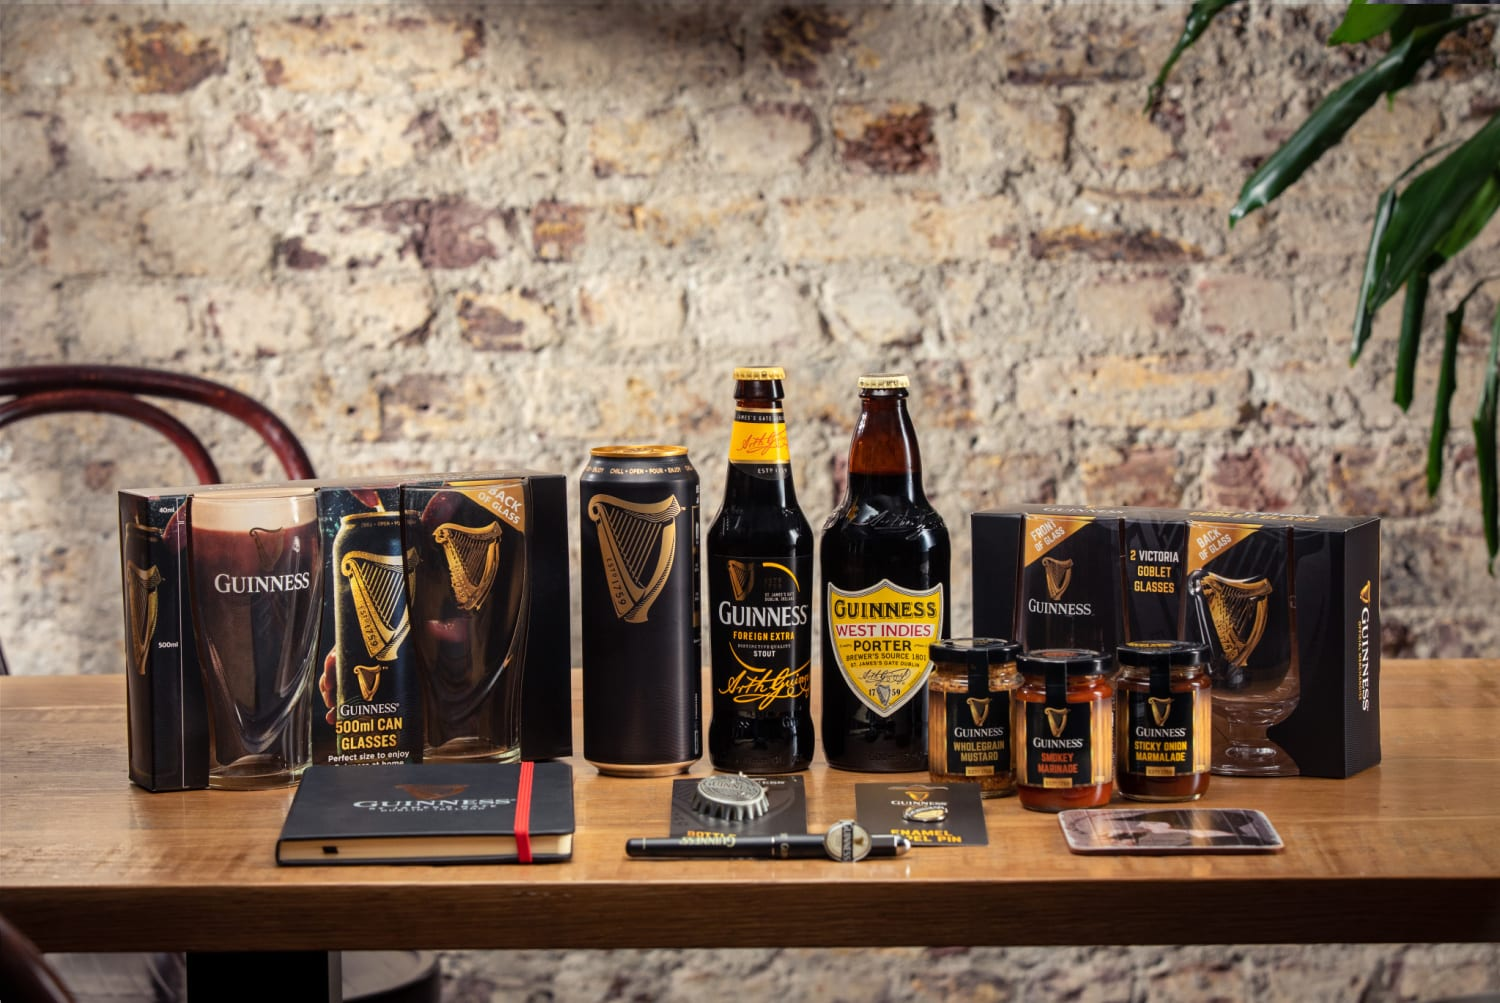 ENJOY THE MAGIC OF GUINNESS AT HOME WITH GUINNESS STOREHOUSE'S EXCLUSIVE TASTING EXPERIENCES